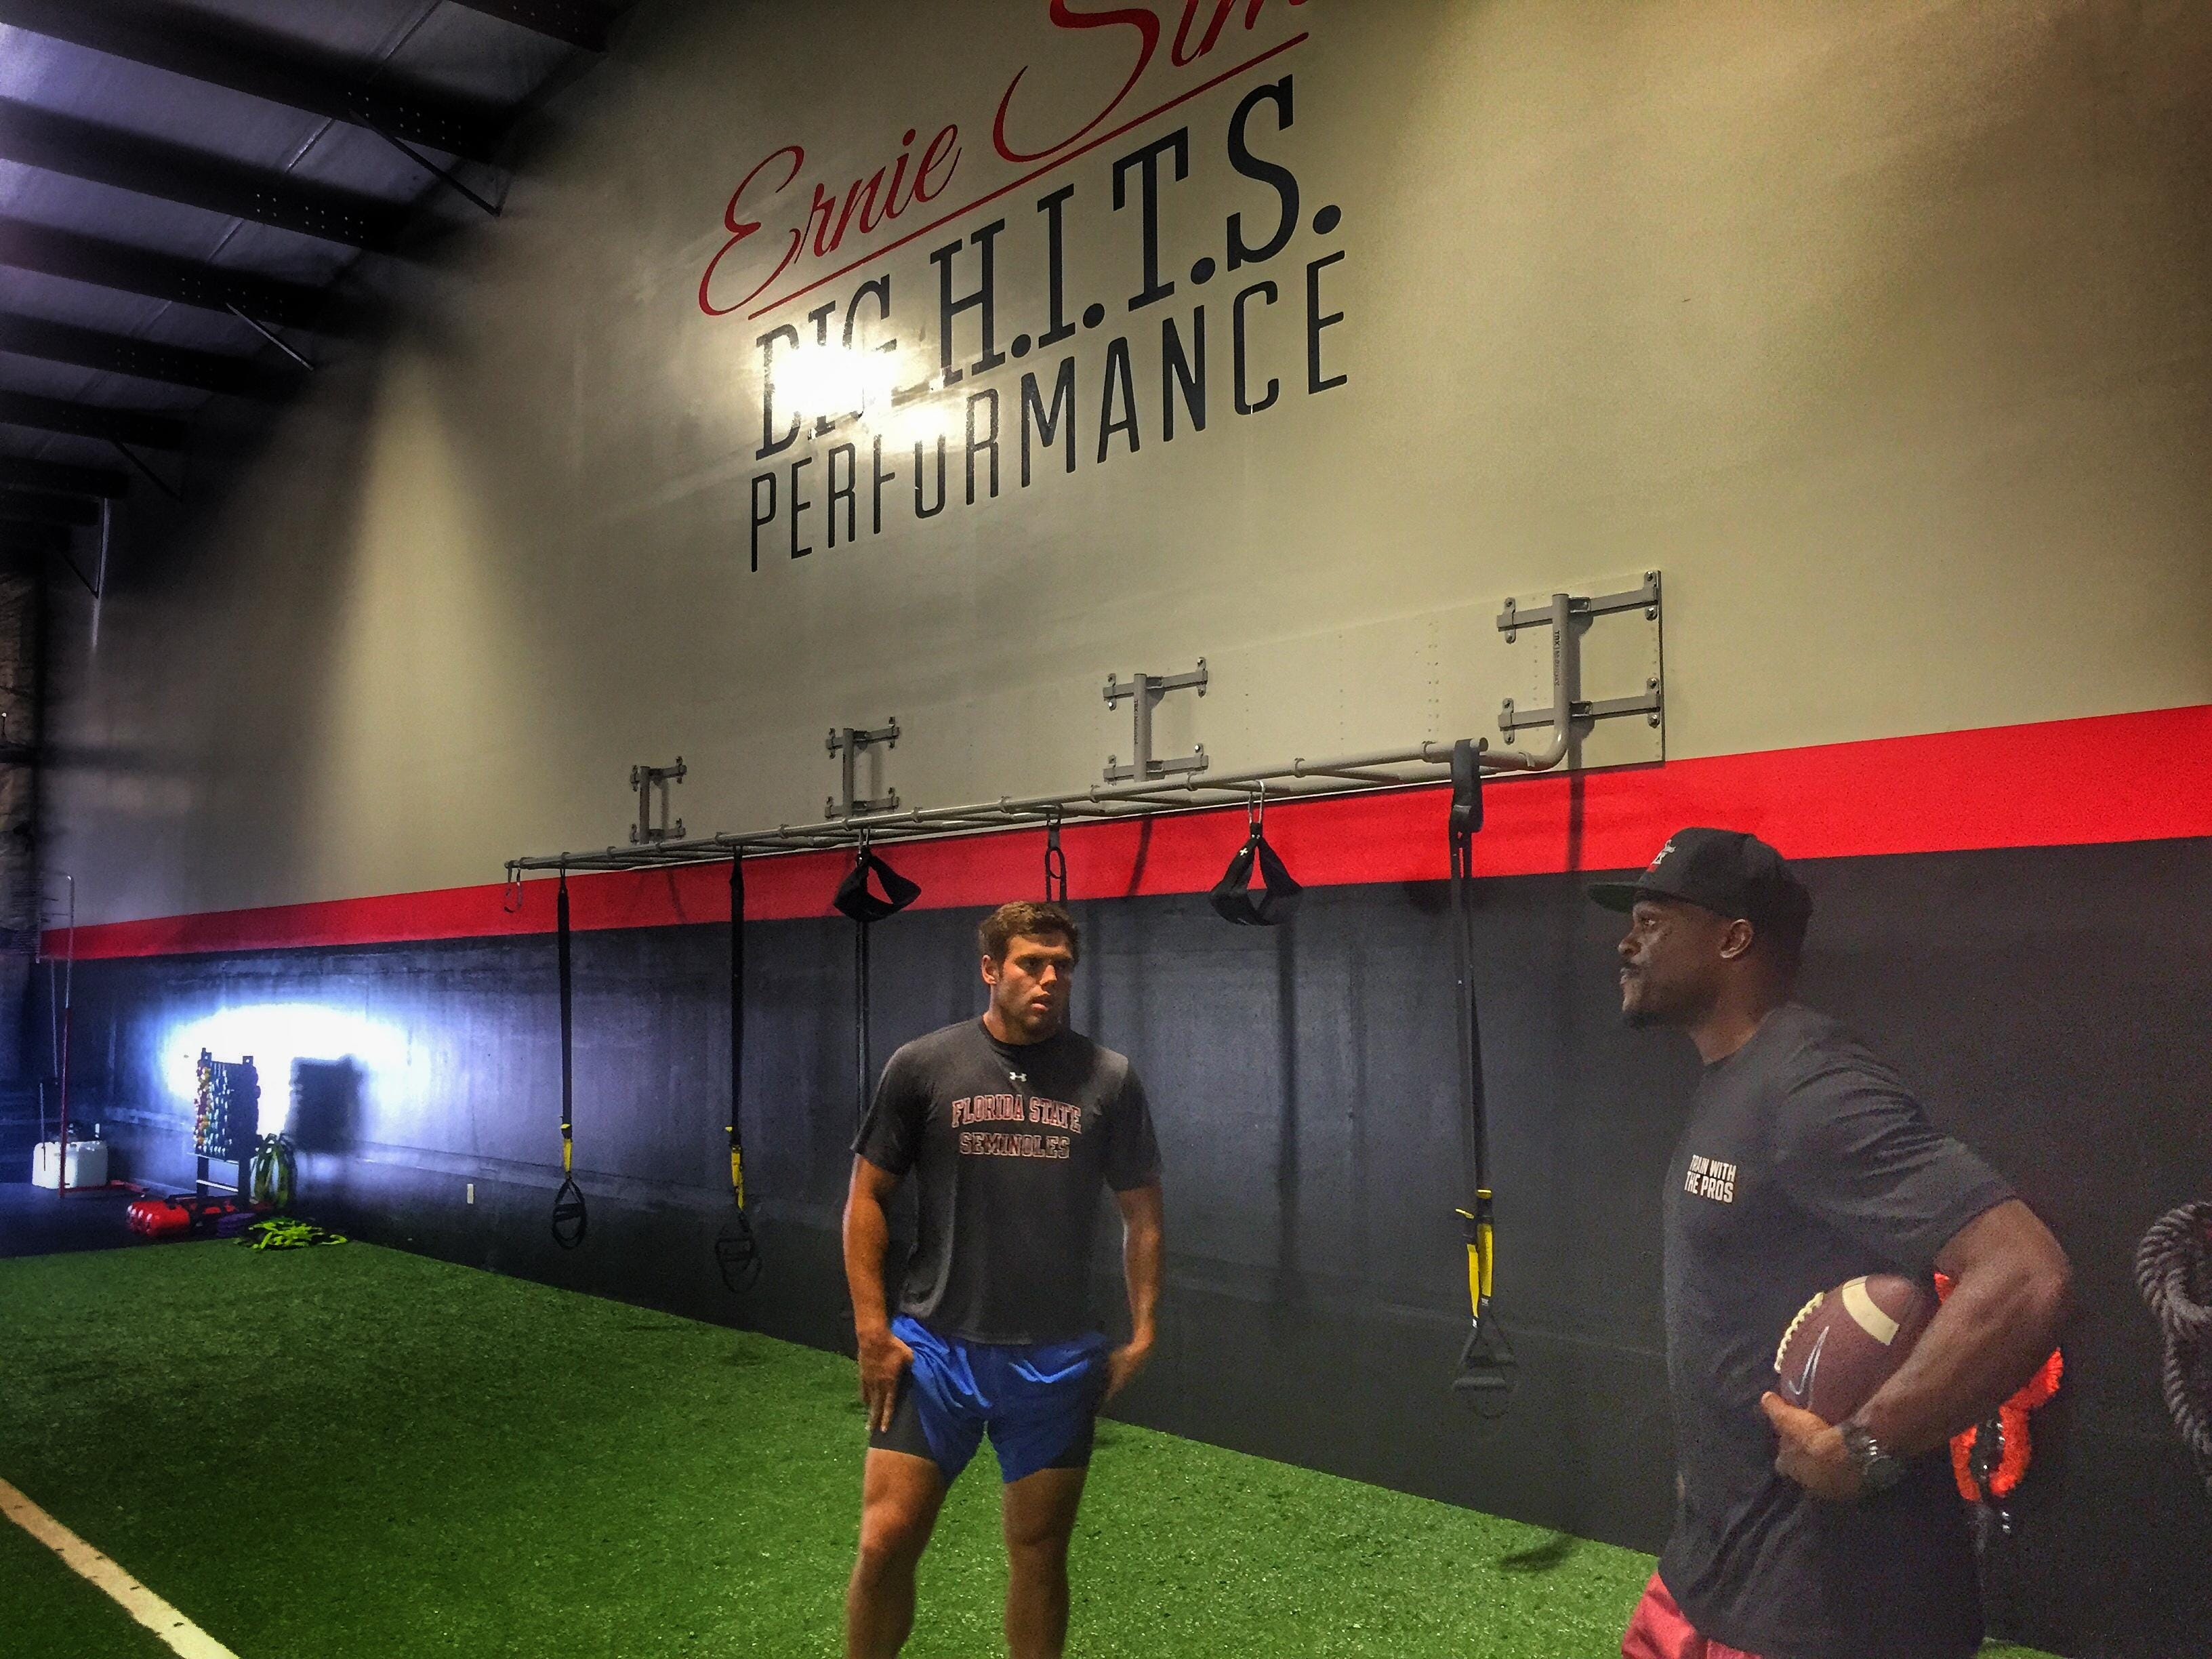 Former NFC and FSU star Ernie Sims works with former Maclay linebacker Matt Deal at Big H.I.T.S. Performance. Sims started the company following his nine-year NFL career. Sims' 8th annual charity weekend starts on Friday.